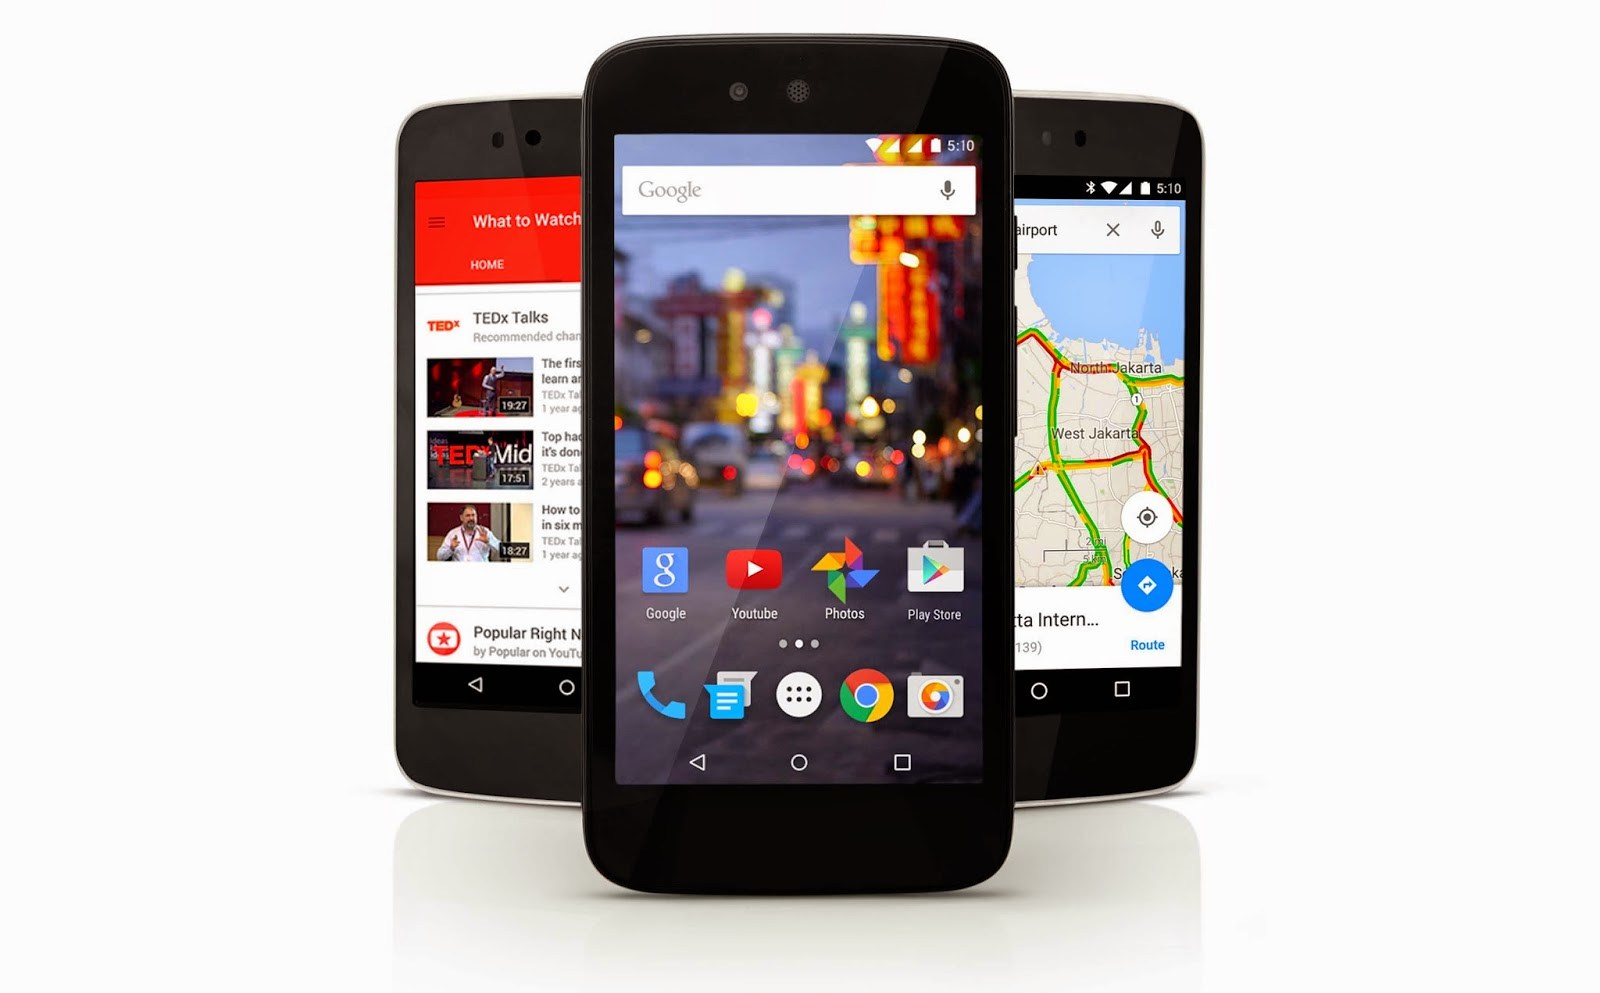 Les smartphones Android One disponibles aux Phillippines avec Android 5.1